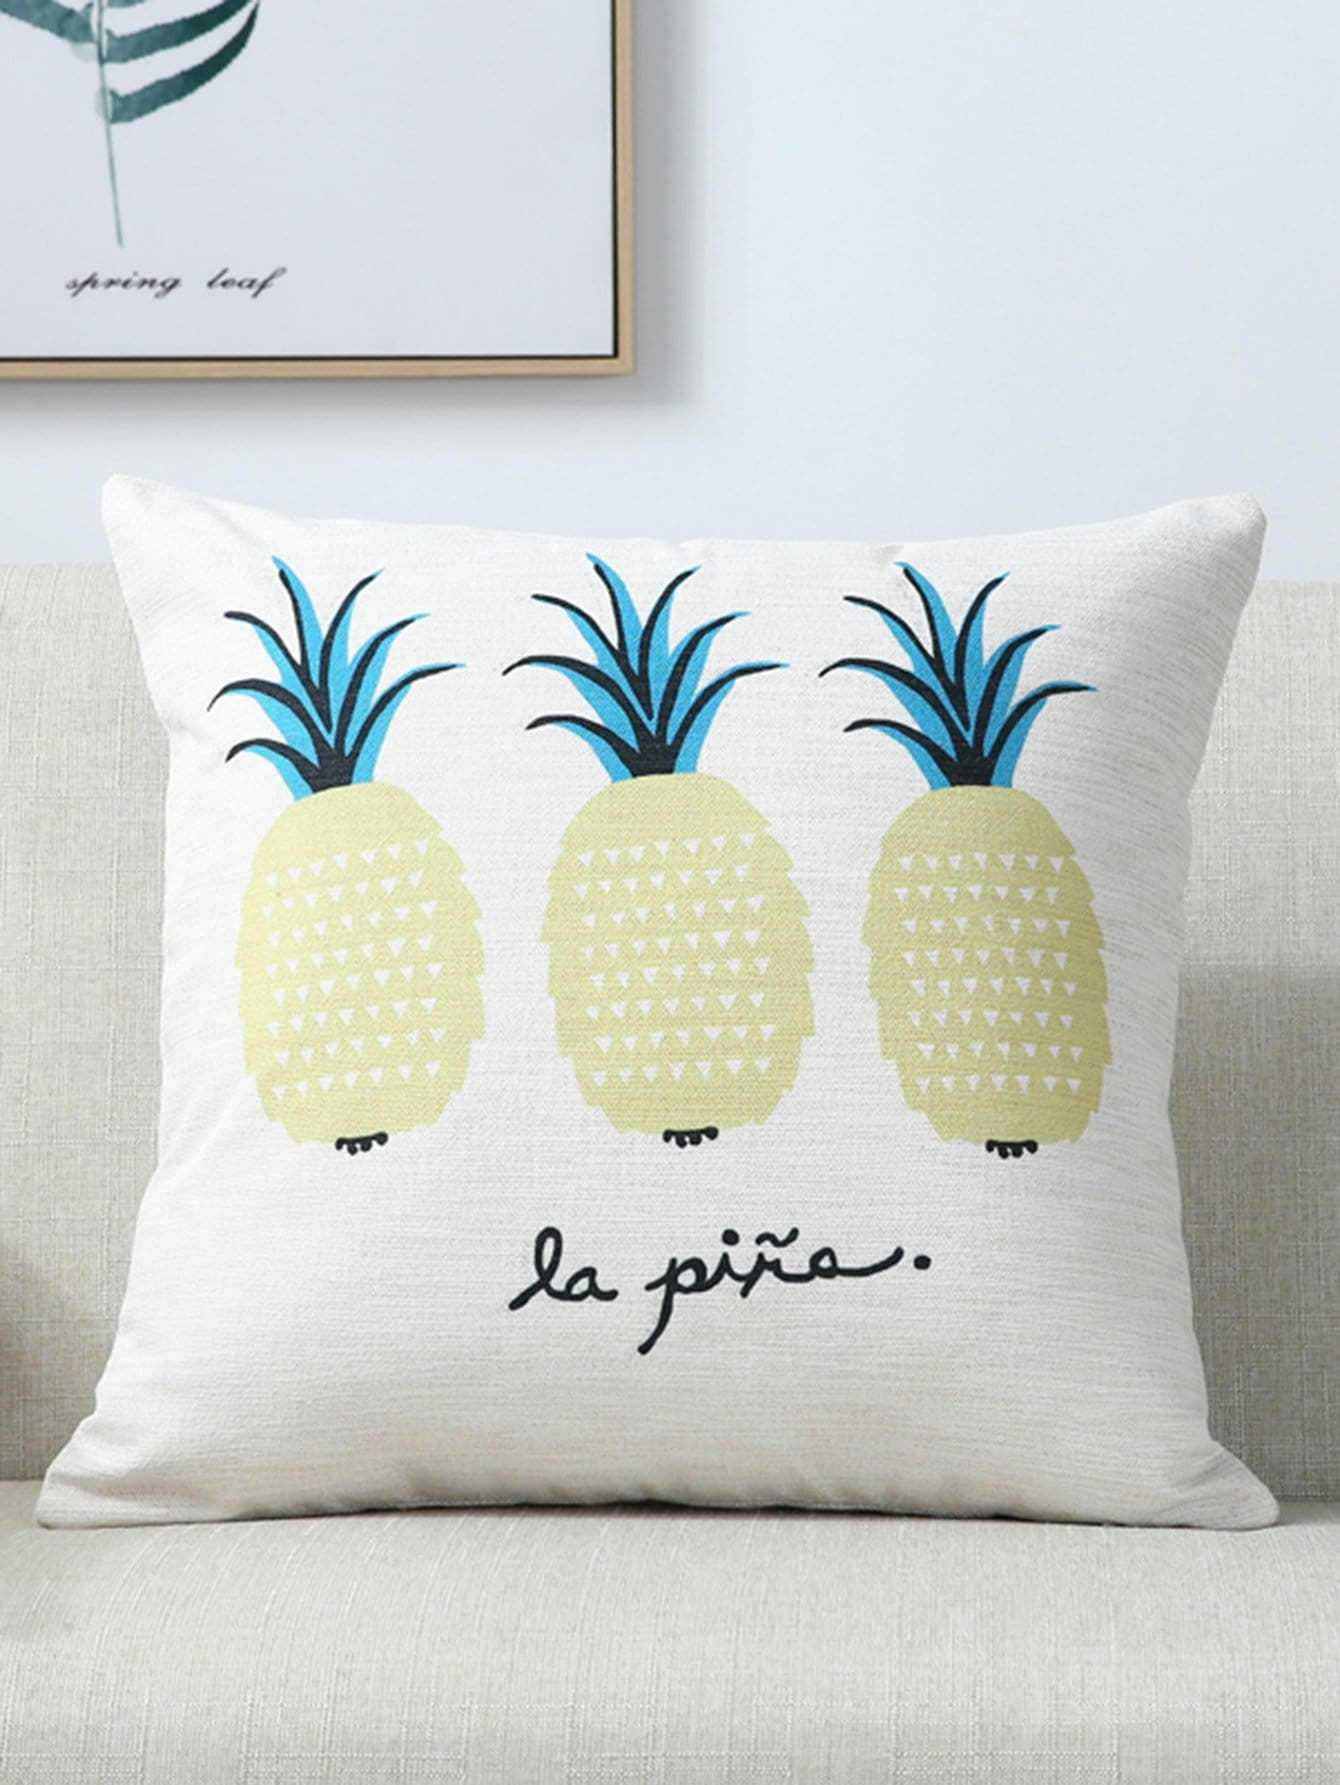 Pineapple & Letter Print Pillow leds c4 suite 05 0380 bw b8